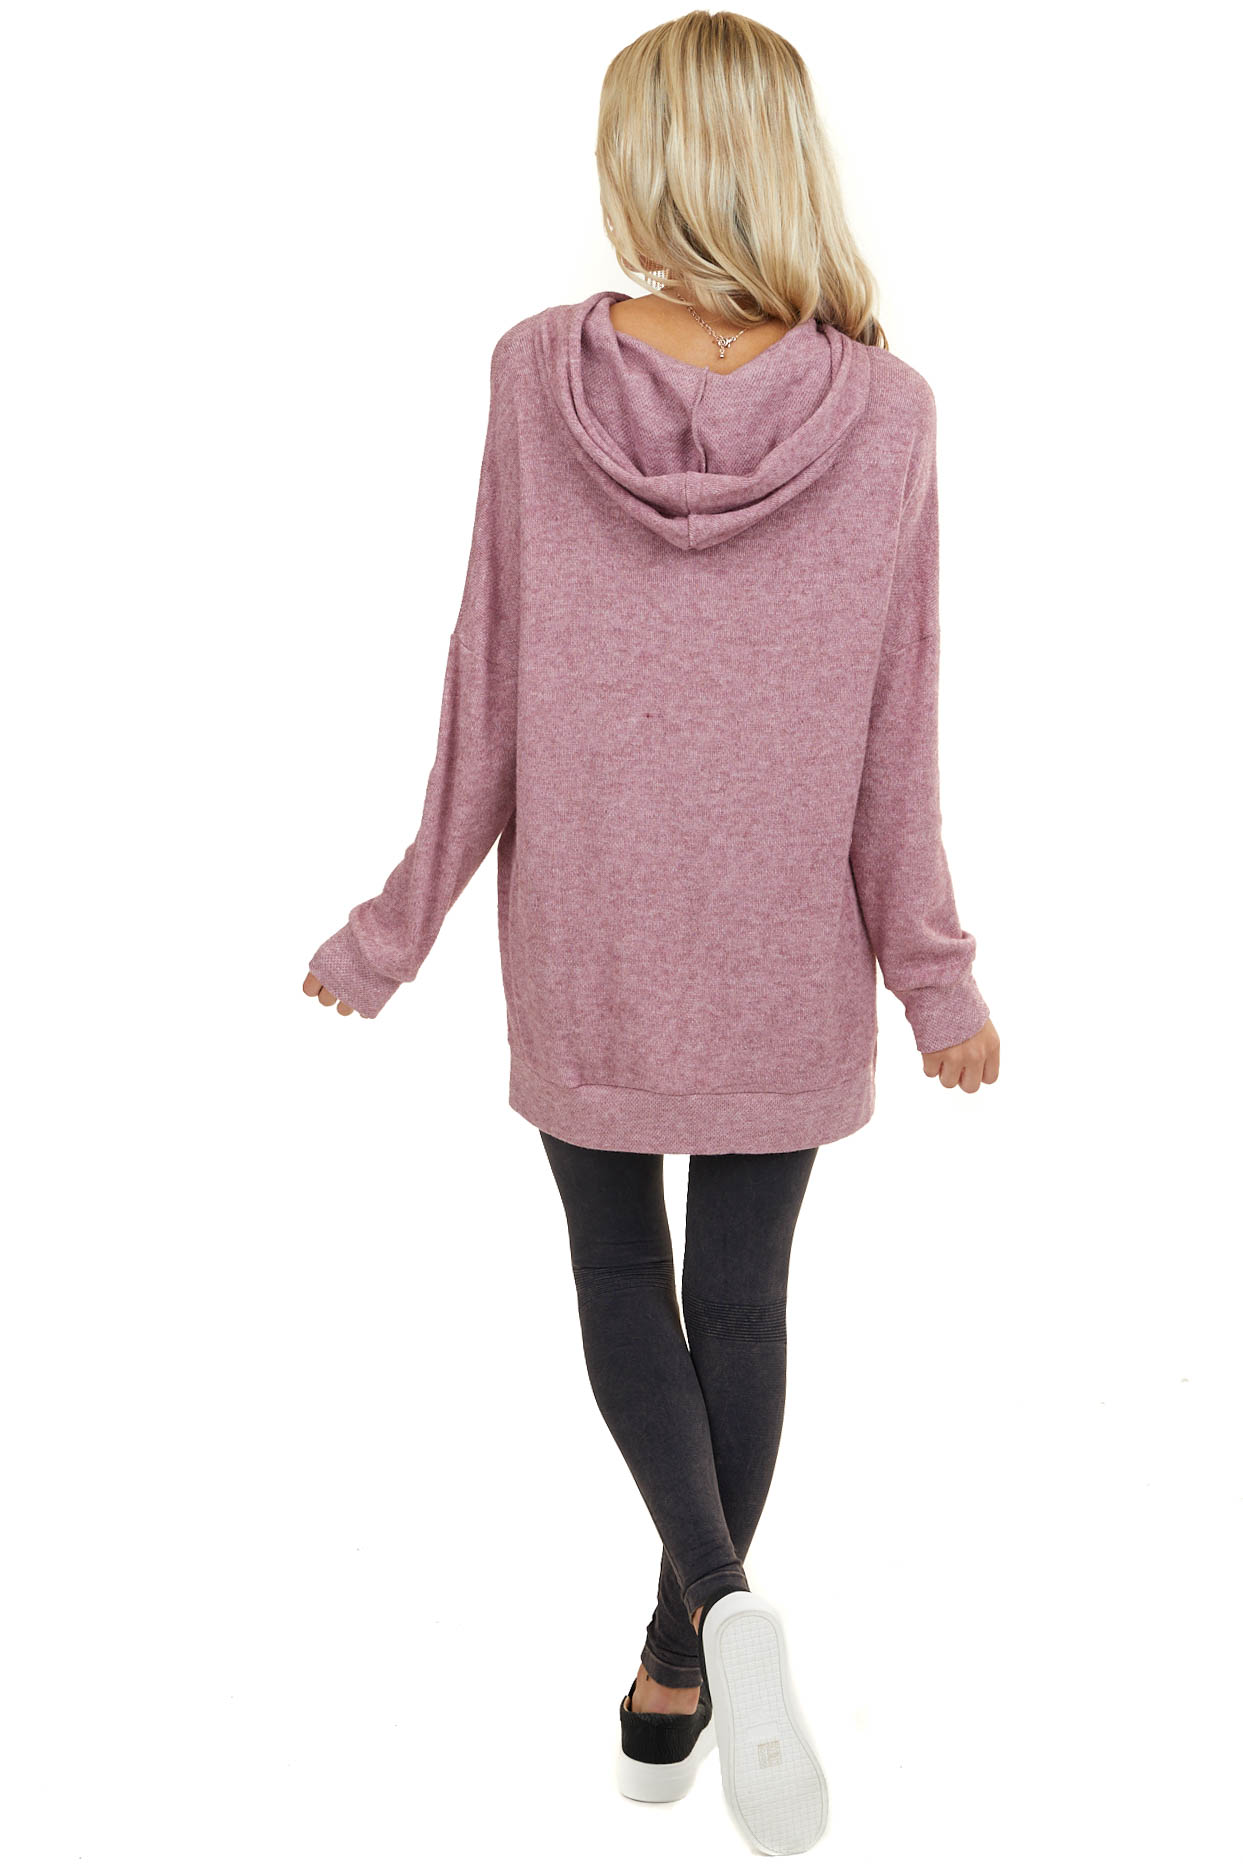 Mauve Textured Long Sleeve Sweater with Drawstring Hood